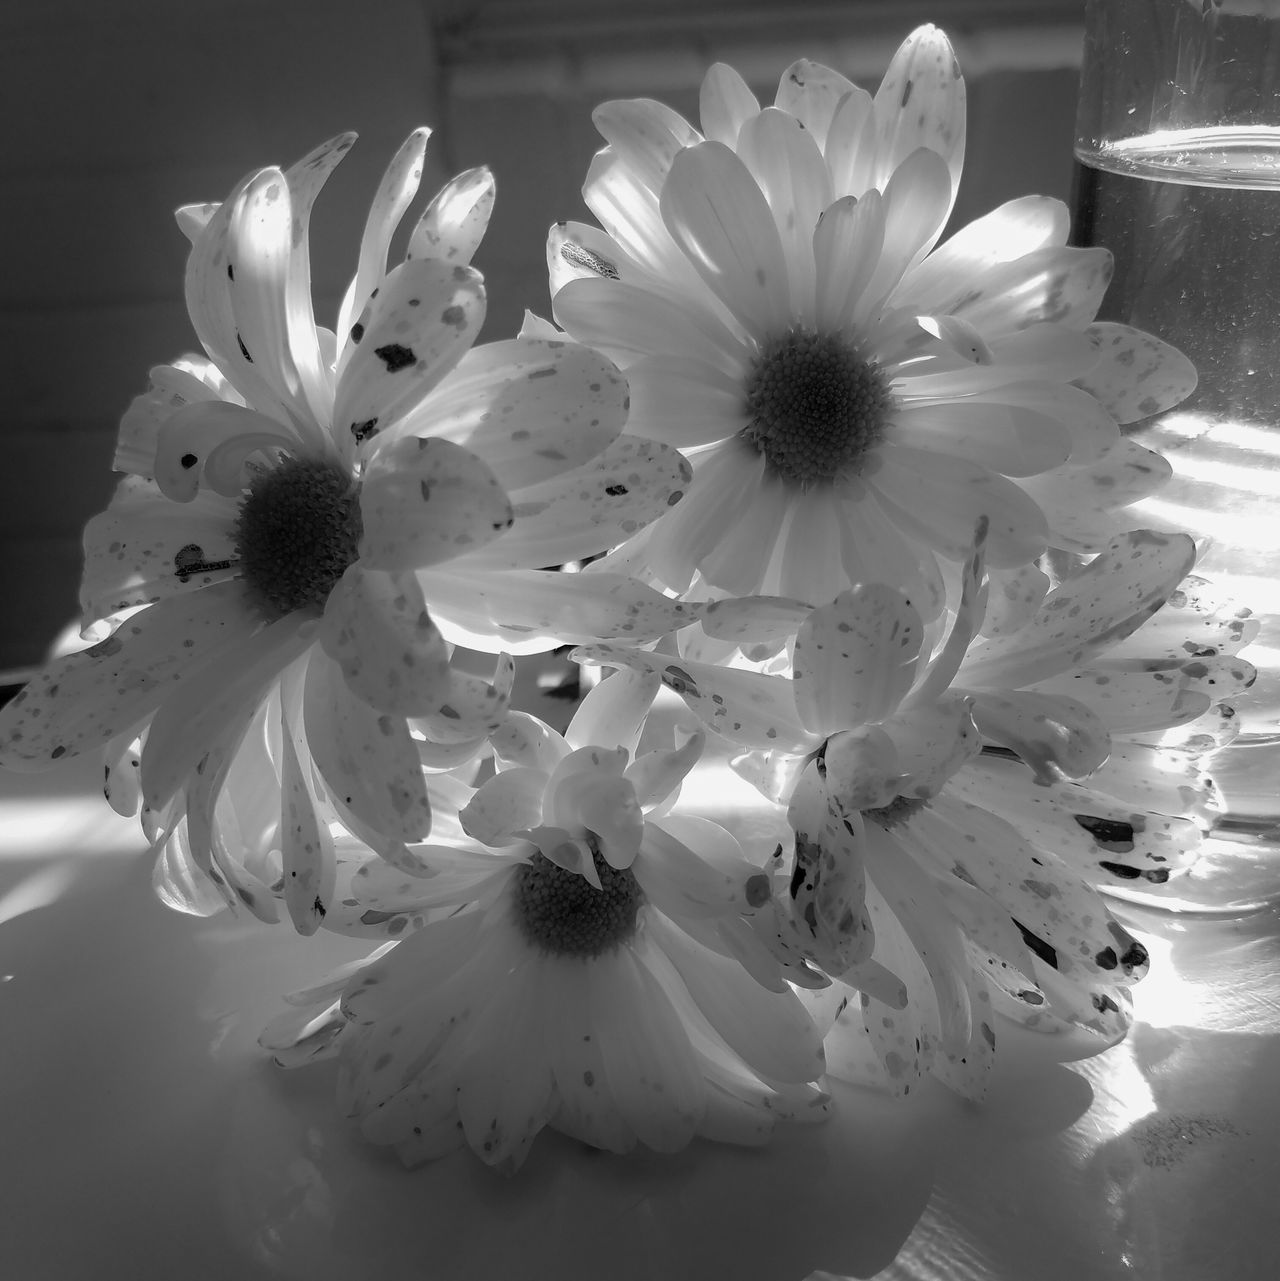 B&W Daisies Bouquet Beauty In Nature Black And White Photography Close-up Day Fine Art Photography Flower Flower Head Fragility Freshness Growth MUR B&W Nature No People Petal Plant MUR On EyeEm